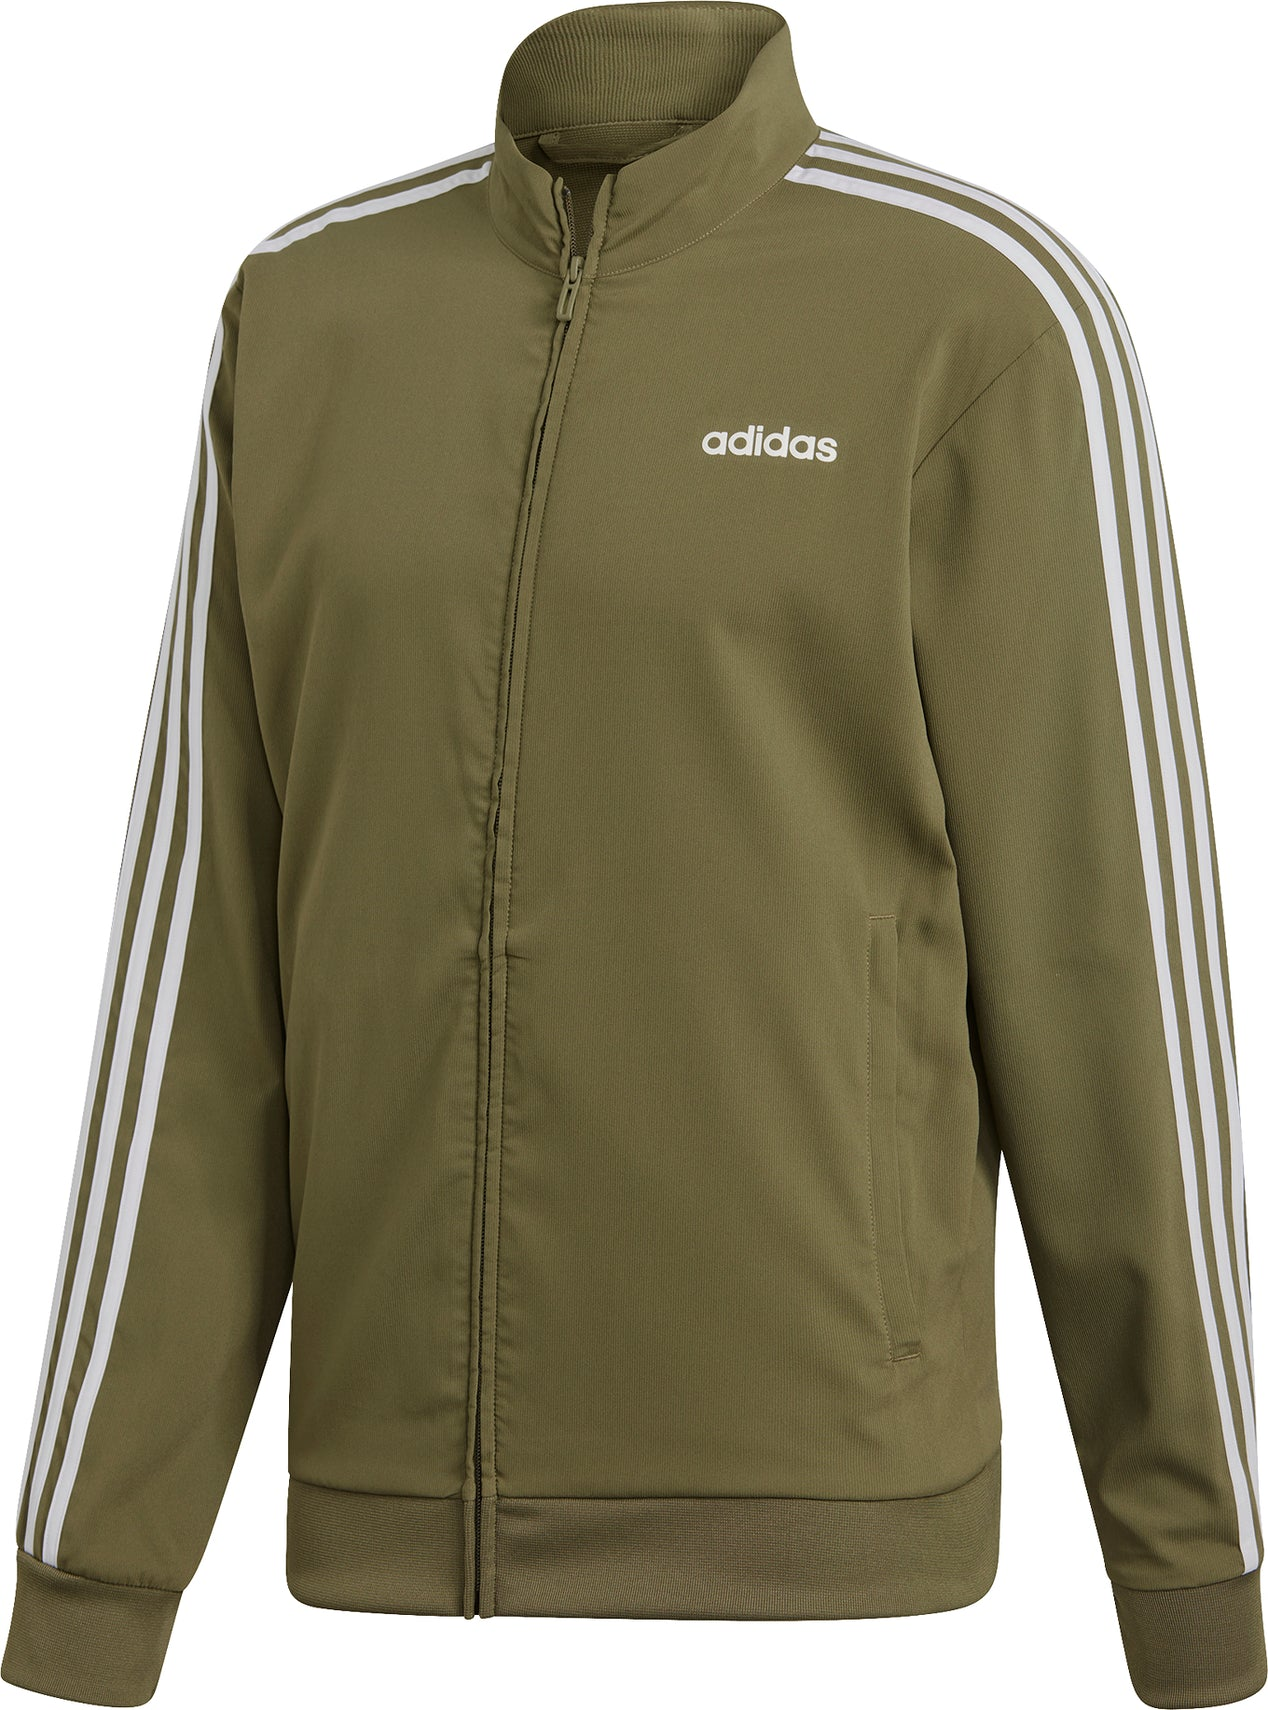 9310b050146f Adidas Essentials 3 Stripes Woven Track Top - Men s